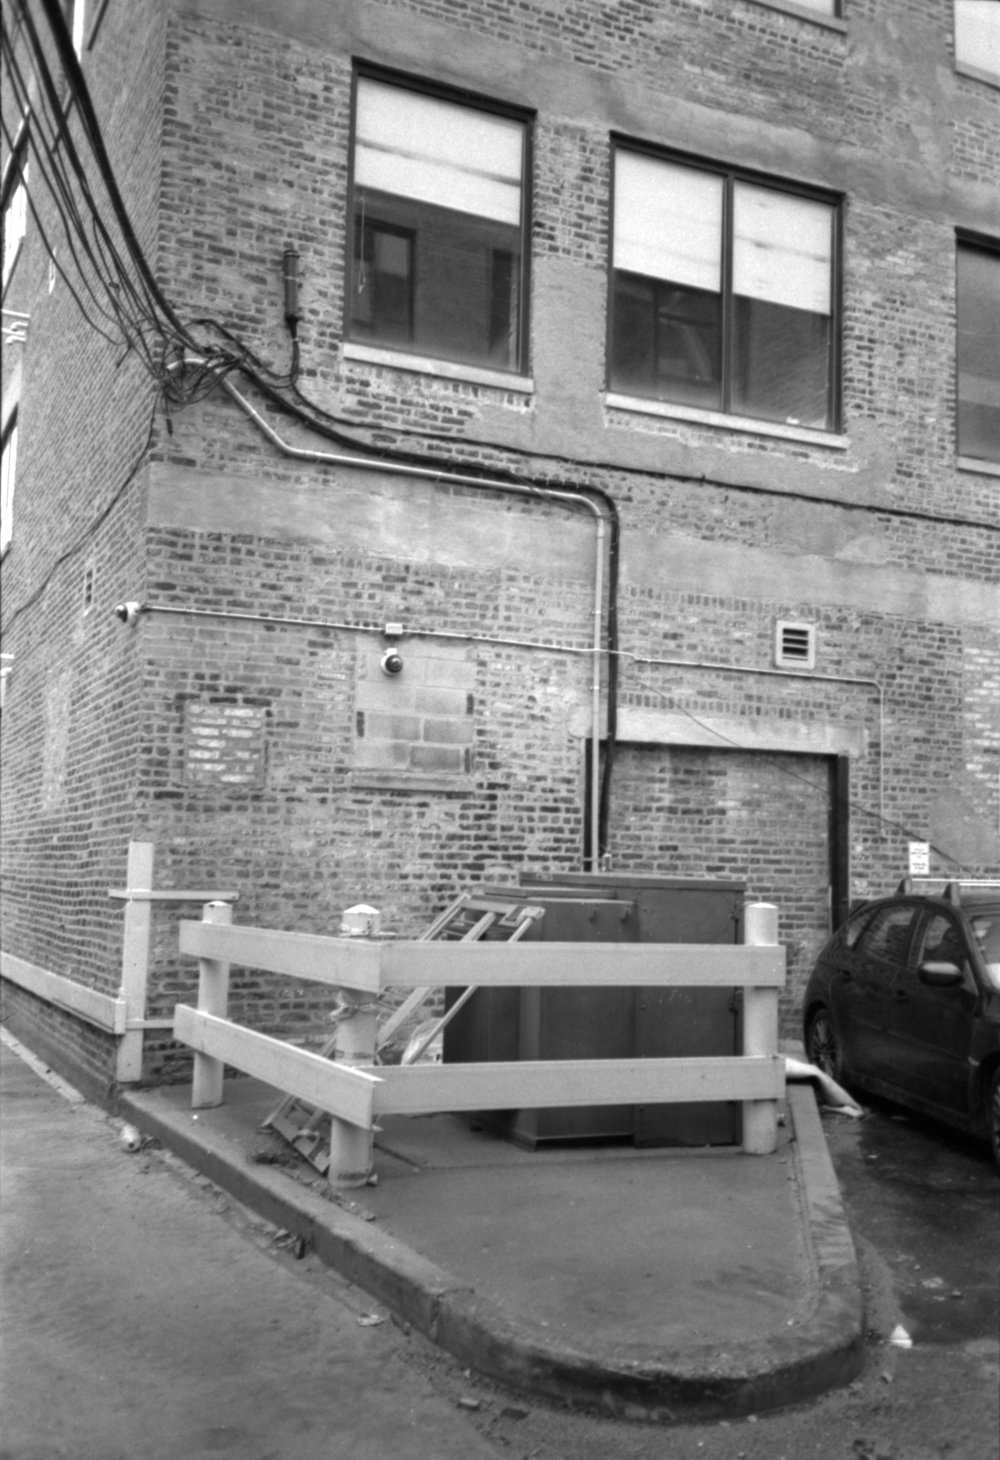 17Feb_FultonMarket-Alleyway_Building_Edit.jpg